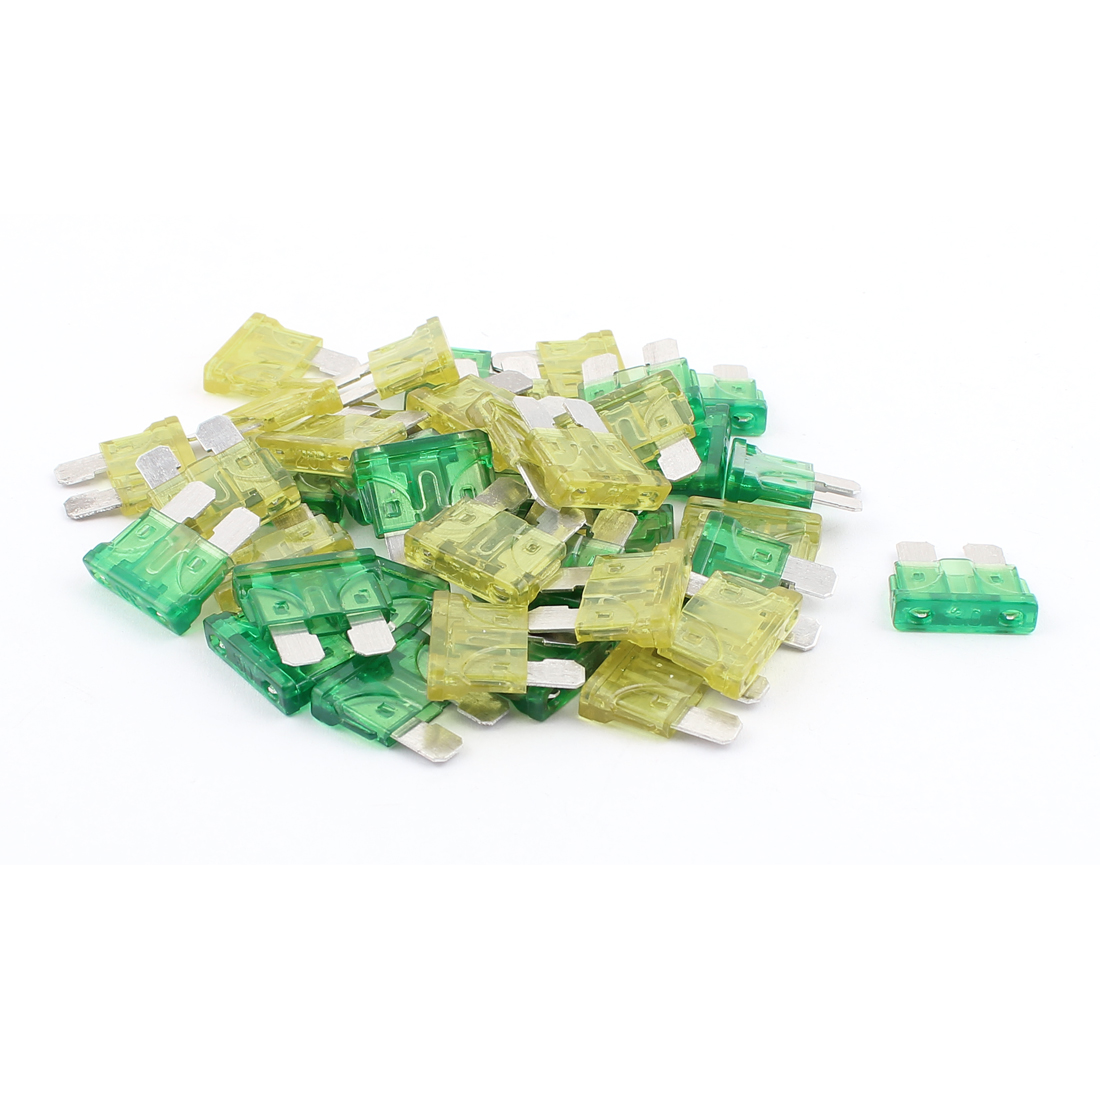 40pcs Automotive Car Vehicle Caravan SUV Boat ATC ATO Mini Blade Fuses 30A 20A Yellow Green